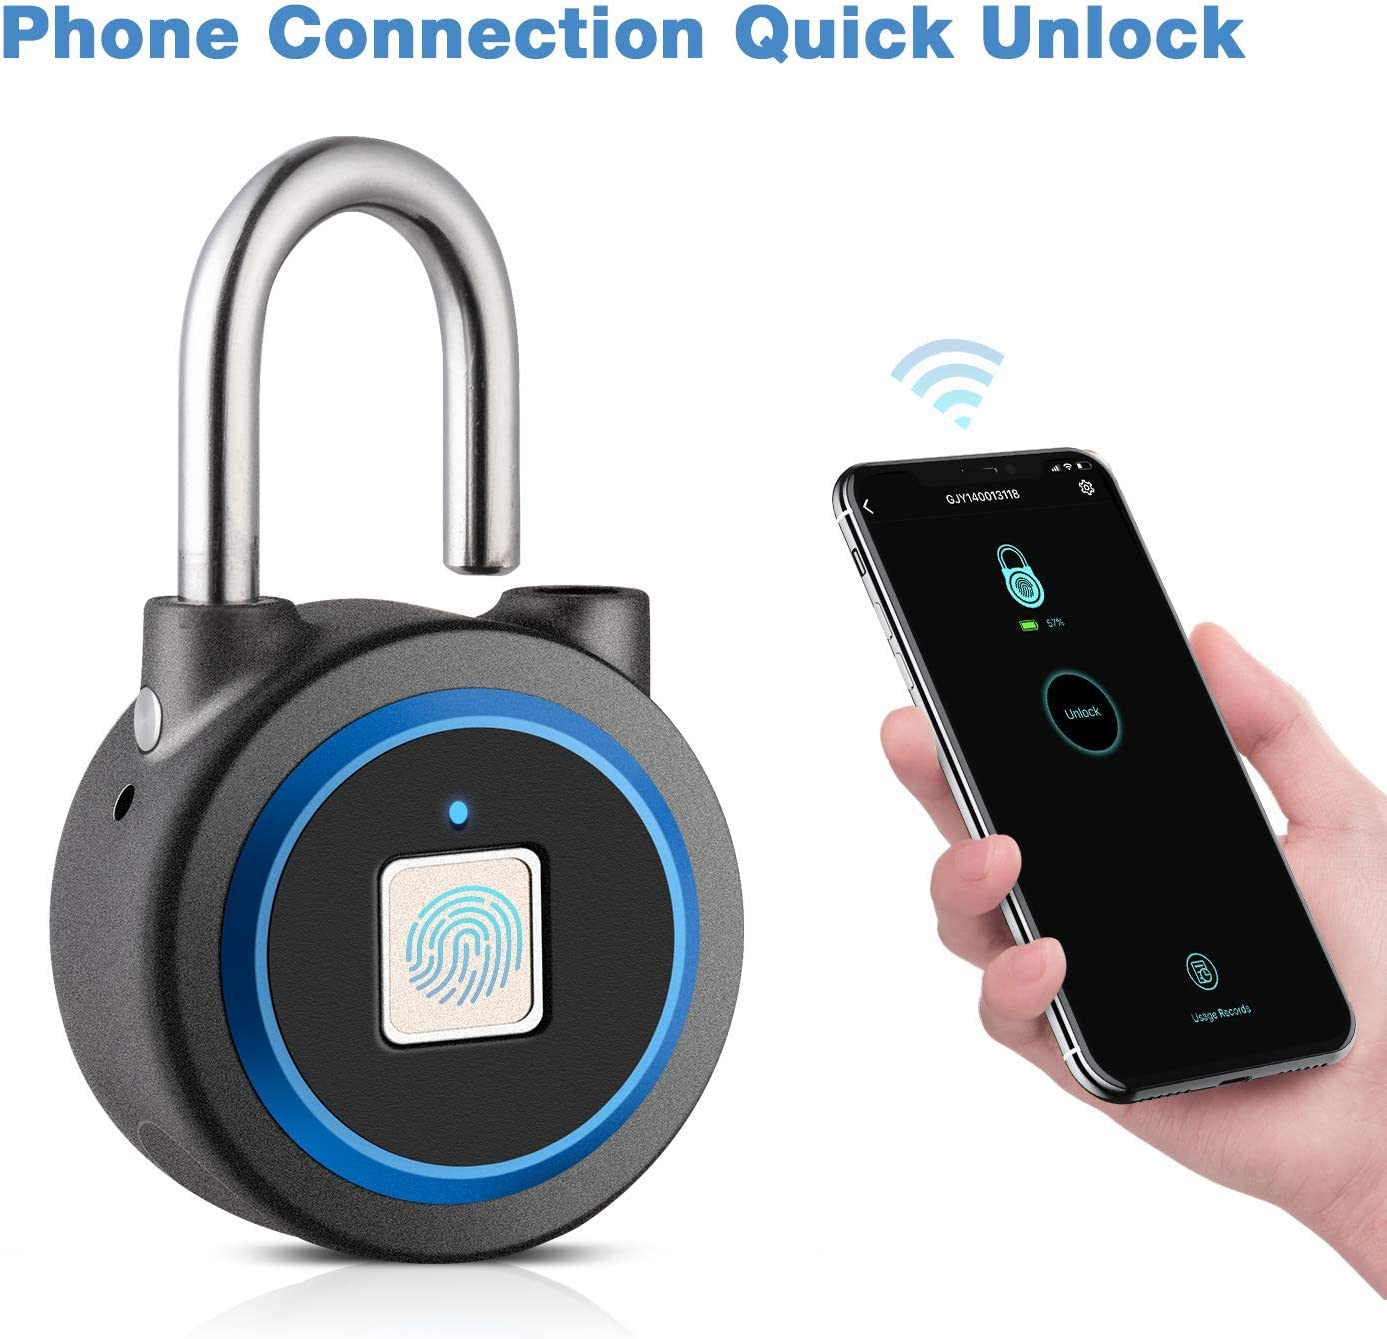 Amazon Promo Code for Fingerprint Padlock Thumbprint Bluetooth Lock USB Rechargeable